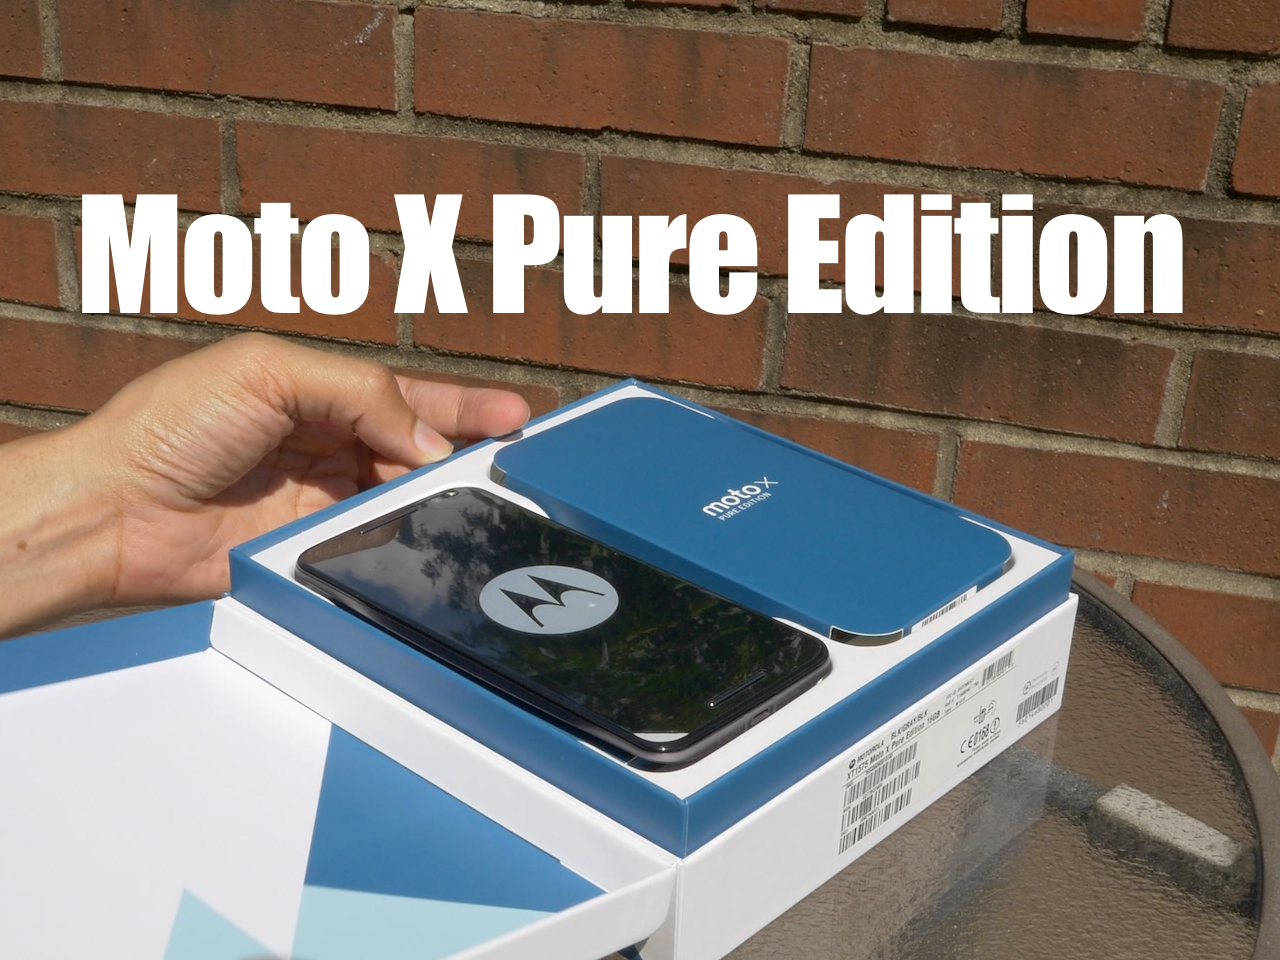 Review: Motorola Moto X Pure Edition from an iPhone user's perspective